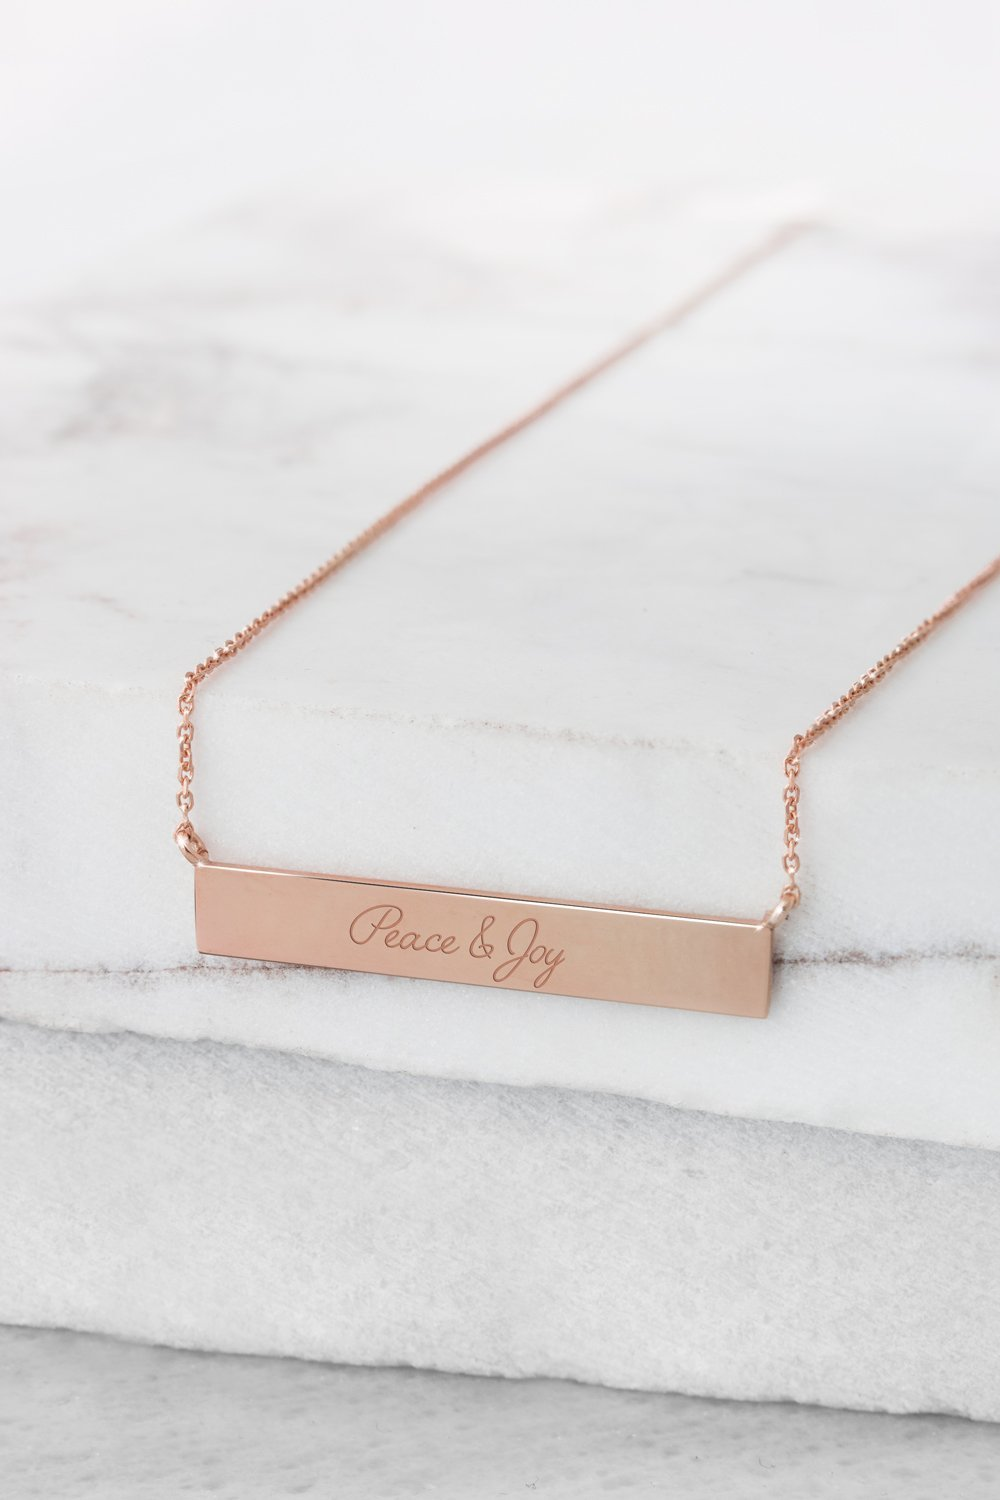 Custom Wish Bar Necklace, Unique Wish Pendant, 9K, 14K, 18K Gold Necklace, Rose Gold Bar, Engraved Necklace, Personalized Gift For Her /code: ntg38: 0.003